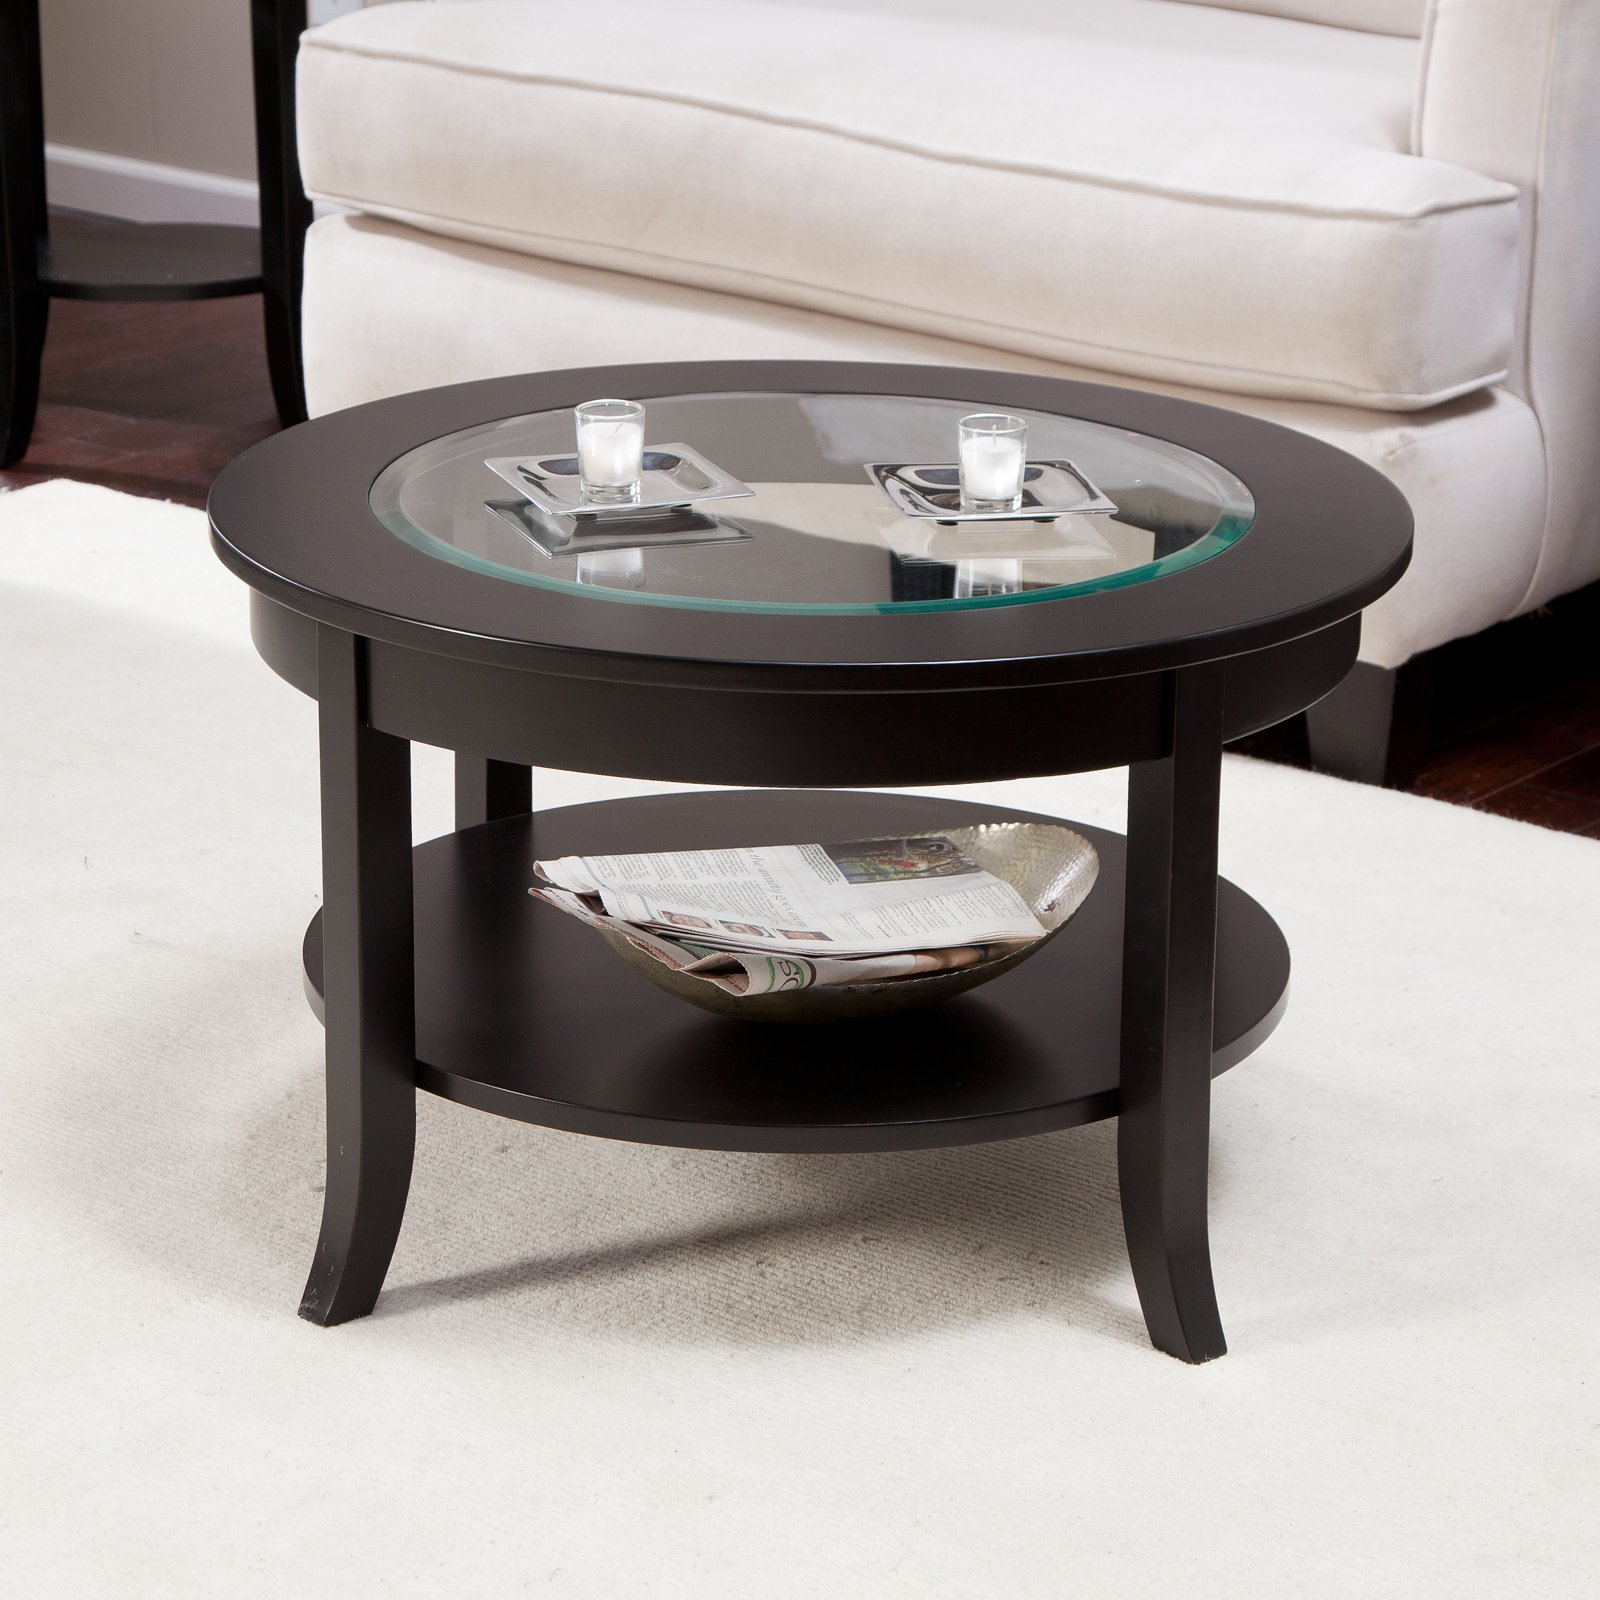 Small Glass Top Coffee Tables Small Round Coffees Table Combine With Glass Painting Fresh At Gallery (Image 9 of 11)